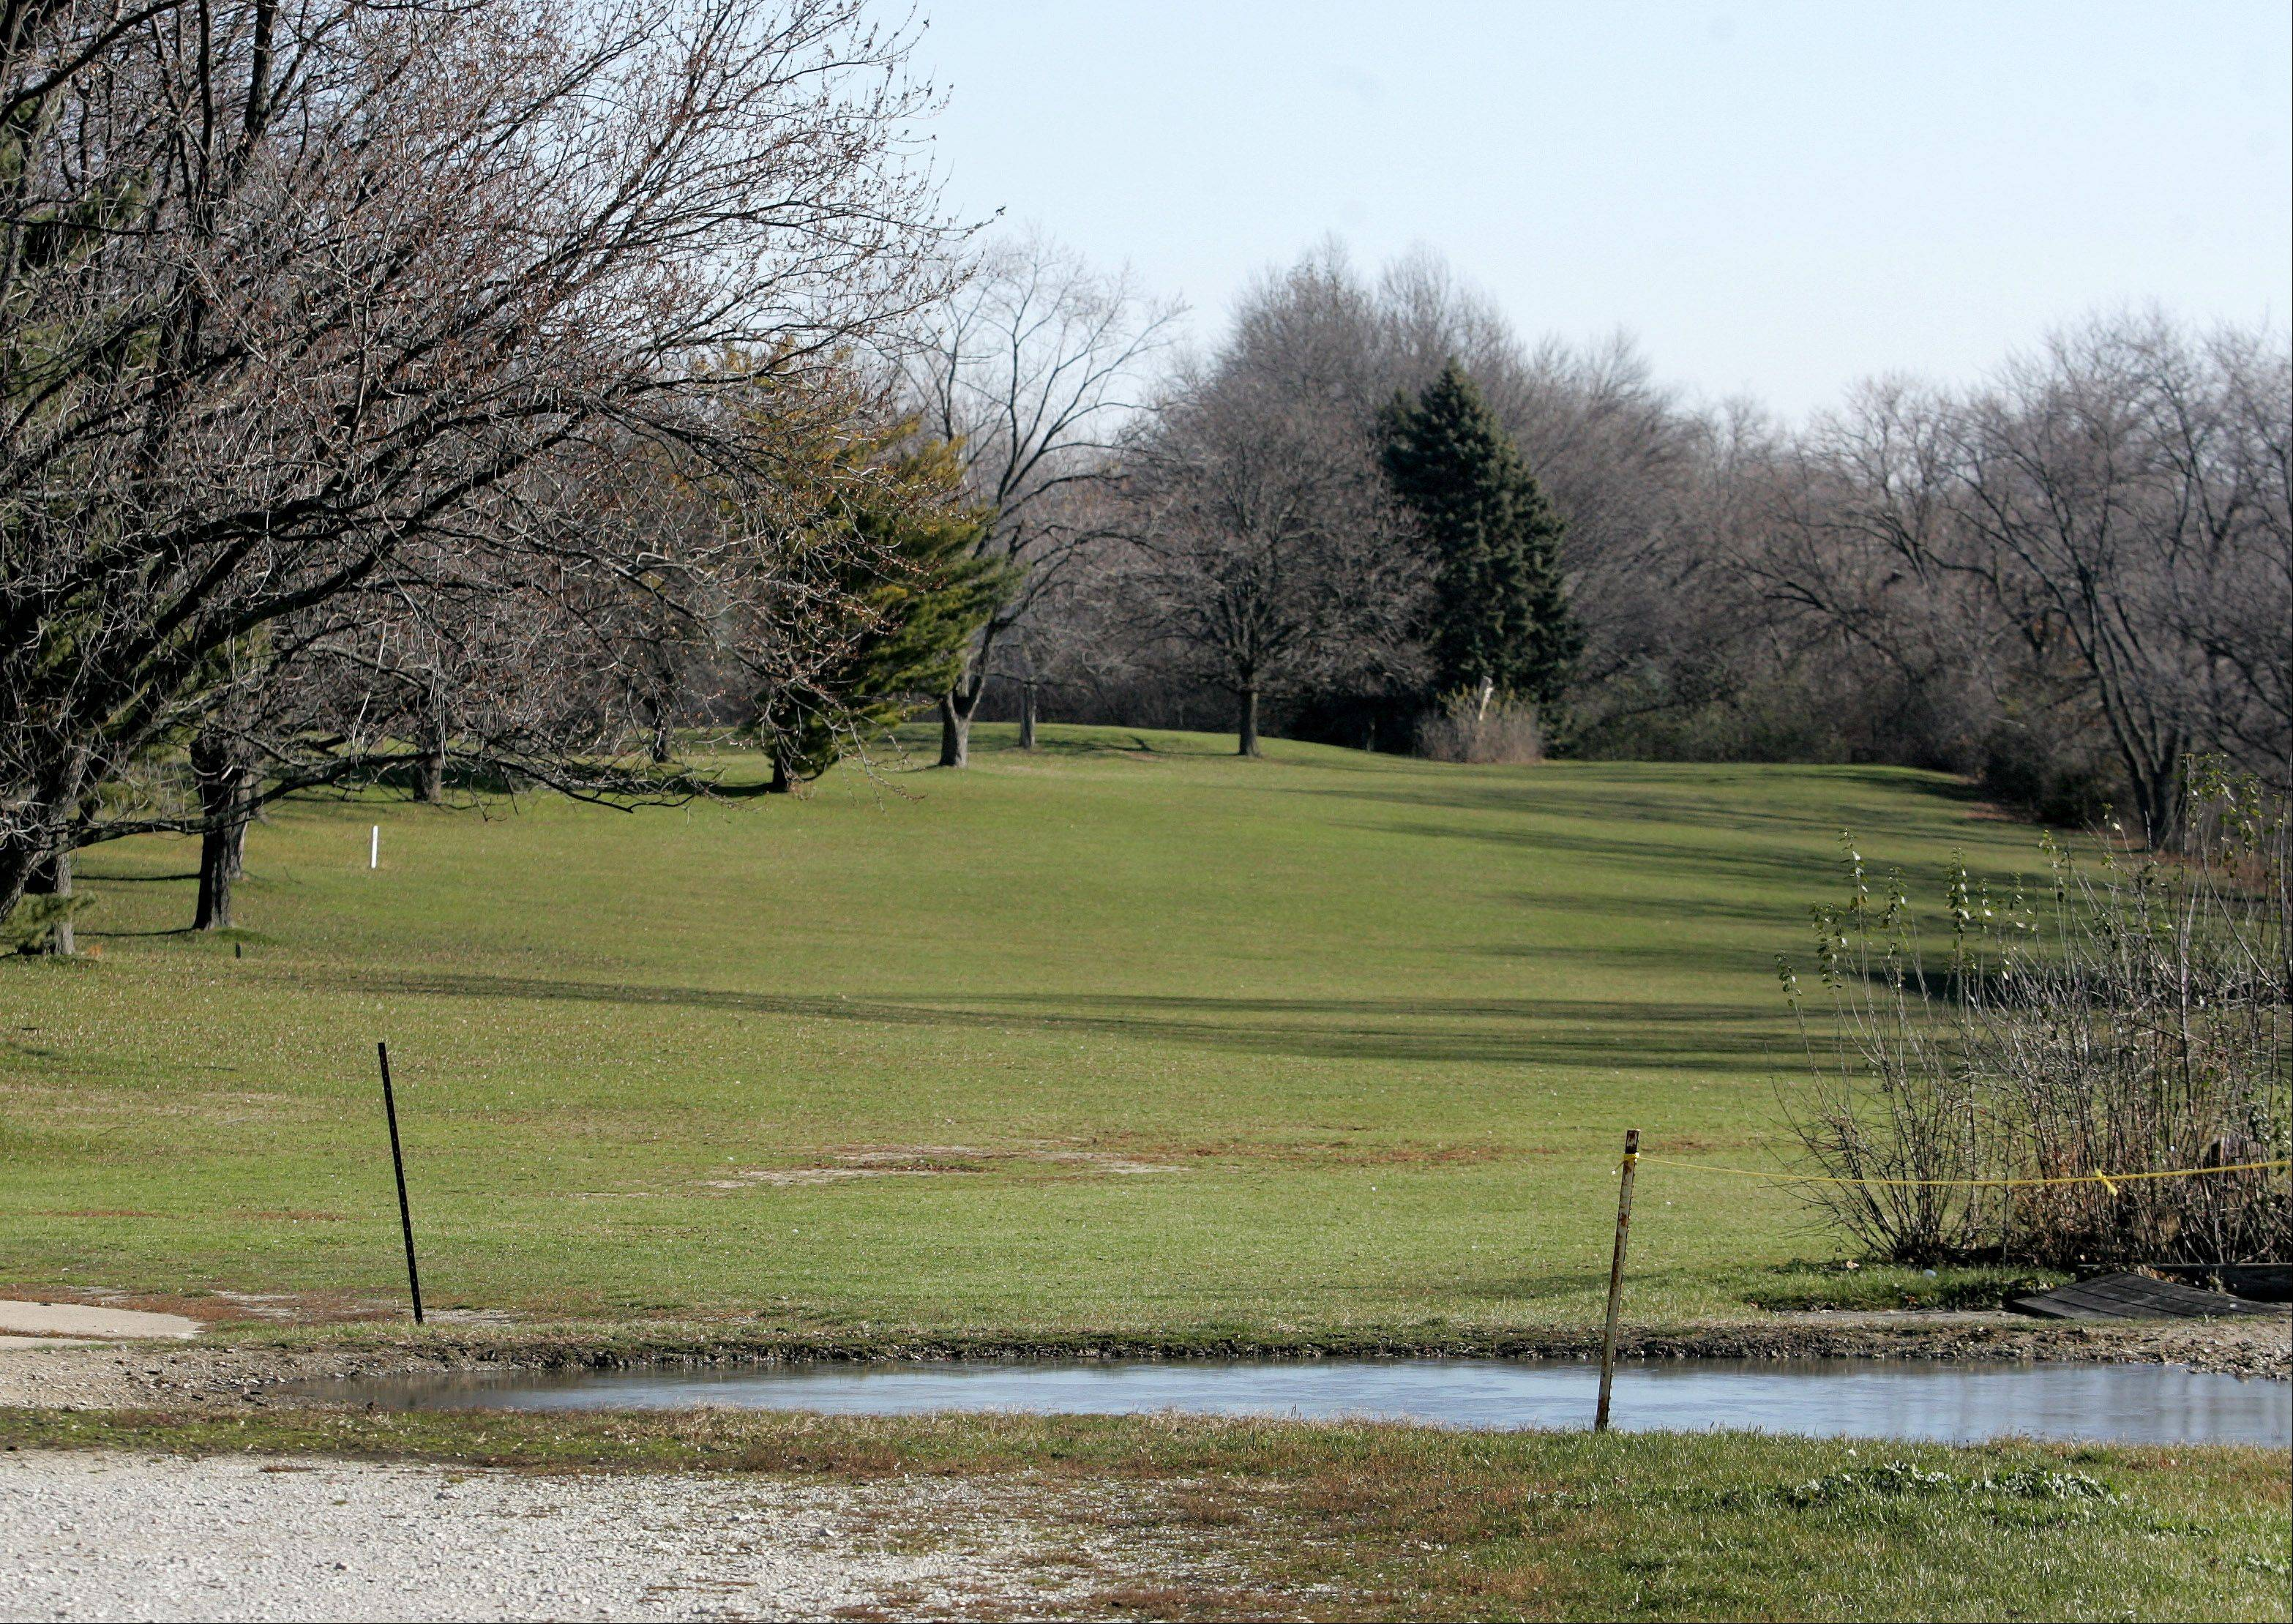 The Ken-Loch Golf Links property in an unincorporated area near Lombard is for sale, and a developer looking to buy it wants to build apartments and townhouses. The land is identified as open space in Lombard planning documents, but trustees gave preliminary approval Thursday to a land-use recommendation that would allow up to a quarter of the site to be developed.